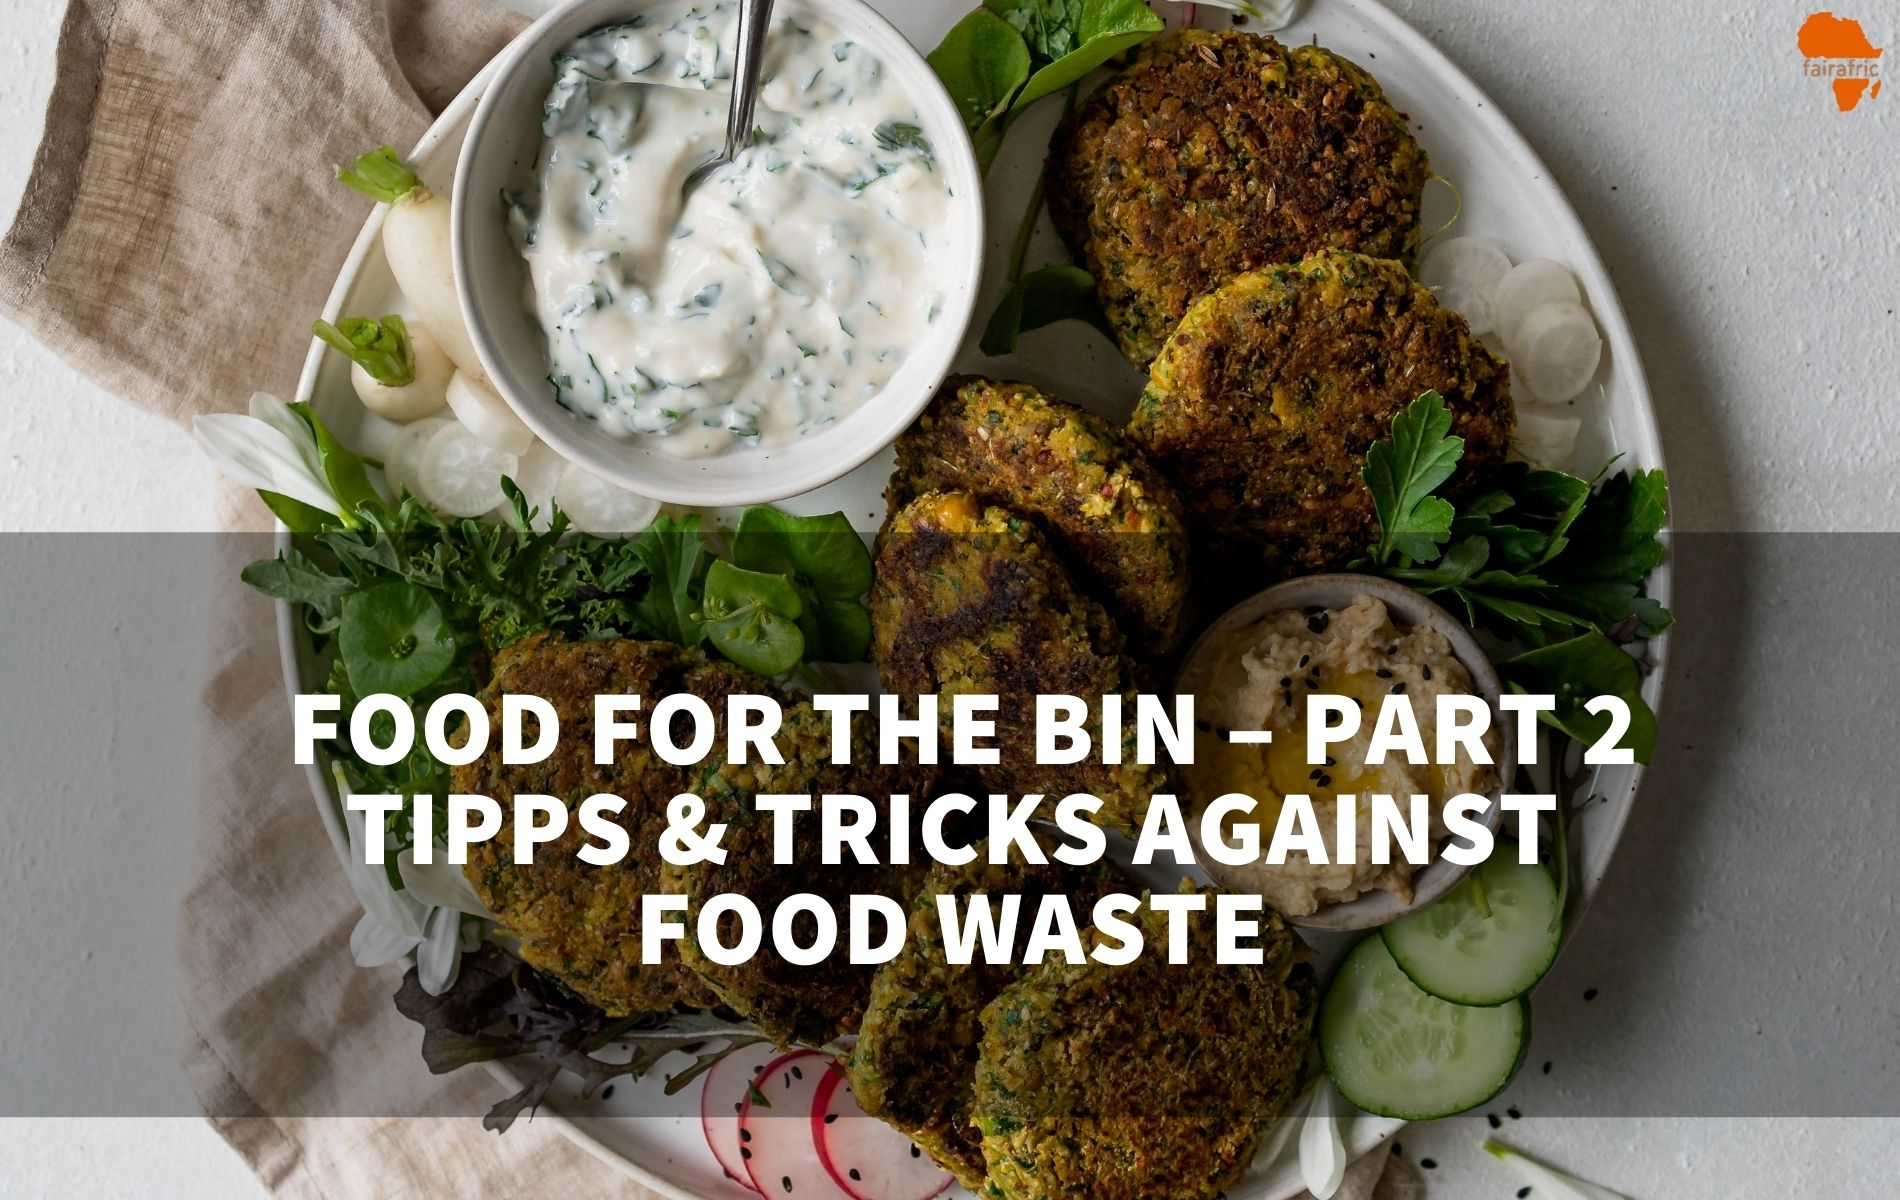 Food for the bin – Part 2: Tips & tricks against food waste